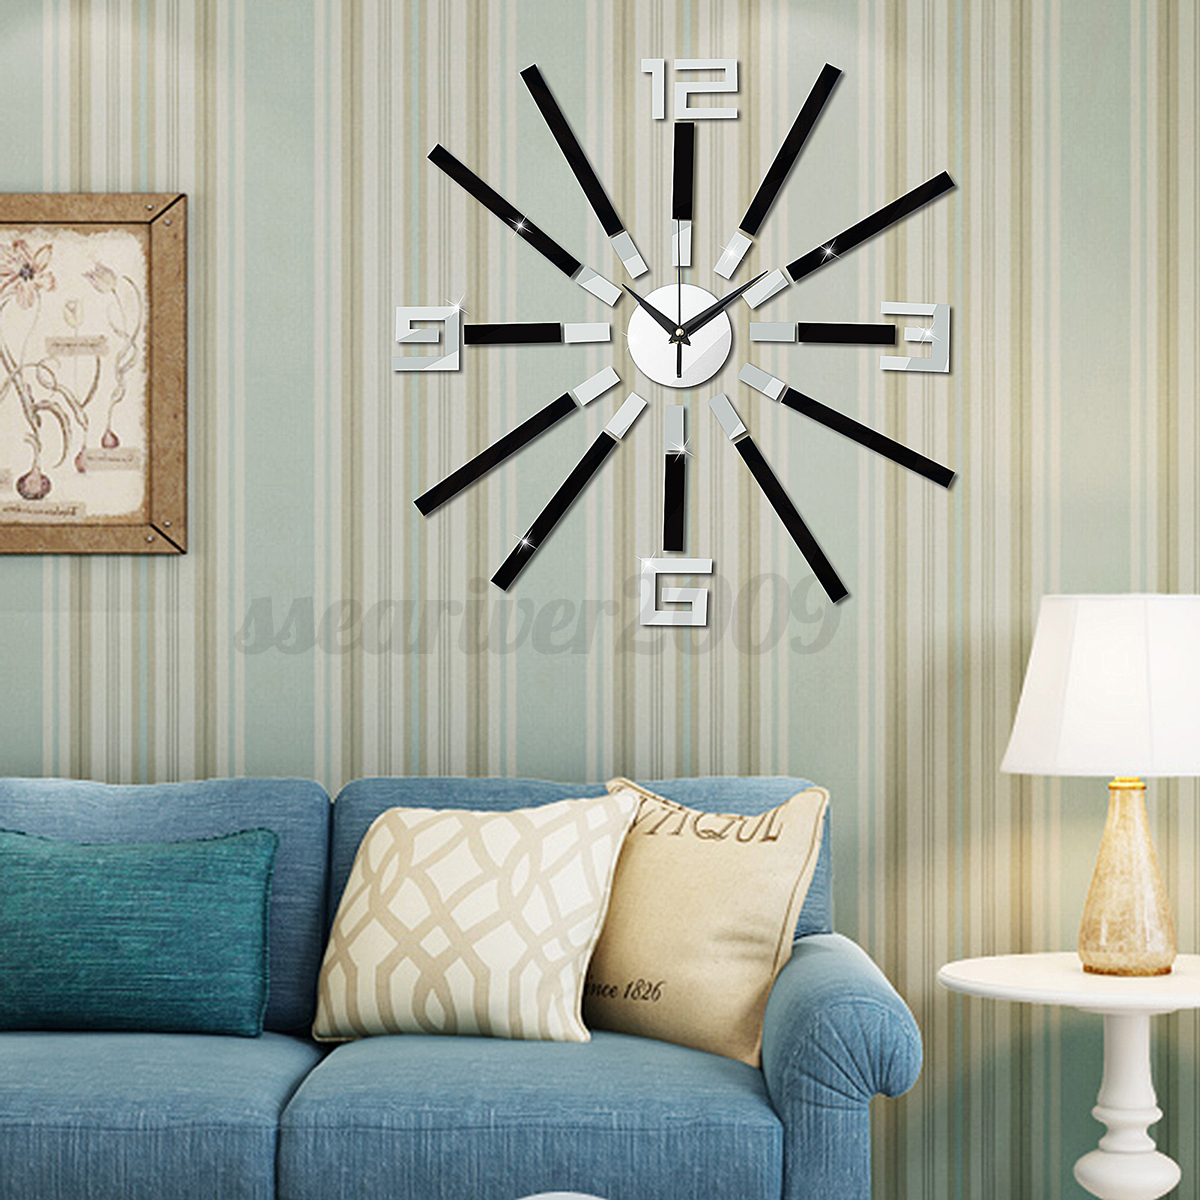 Modern diy analog 3d mirror surface large number wall clock sticker home decor ebay - Wall decor mirror home accents ...